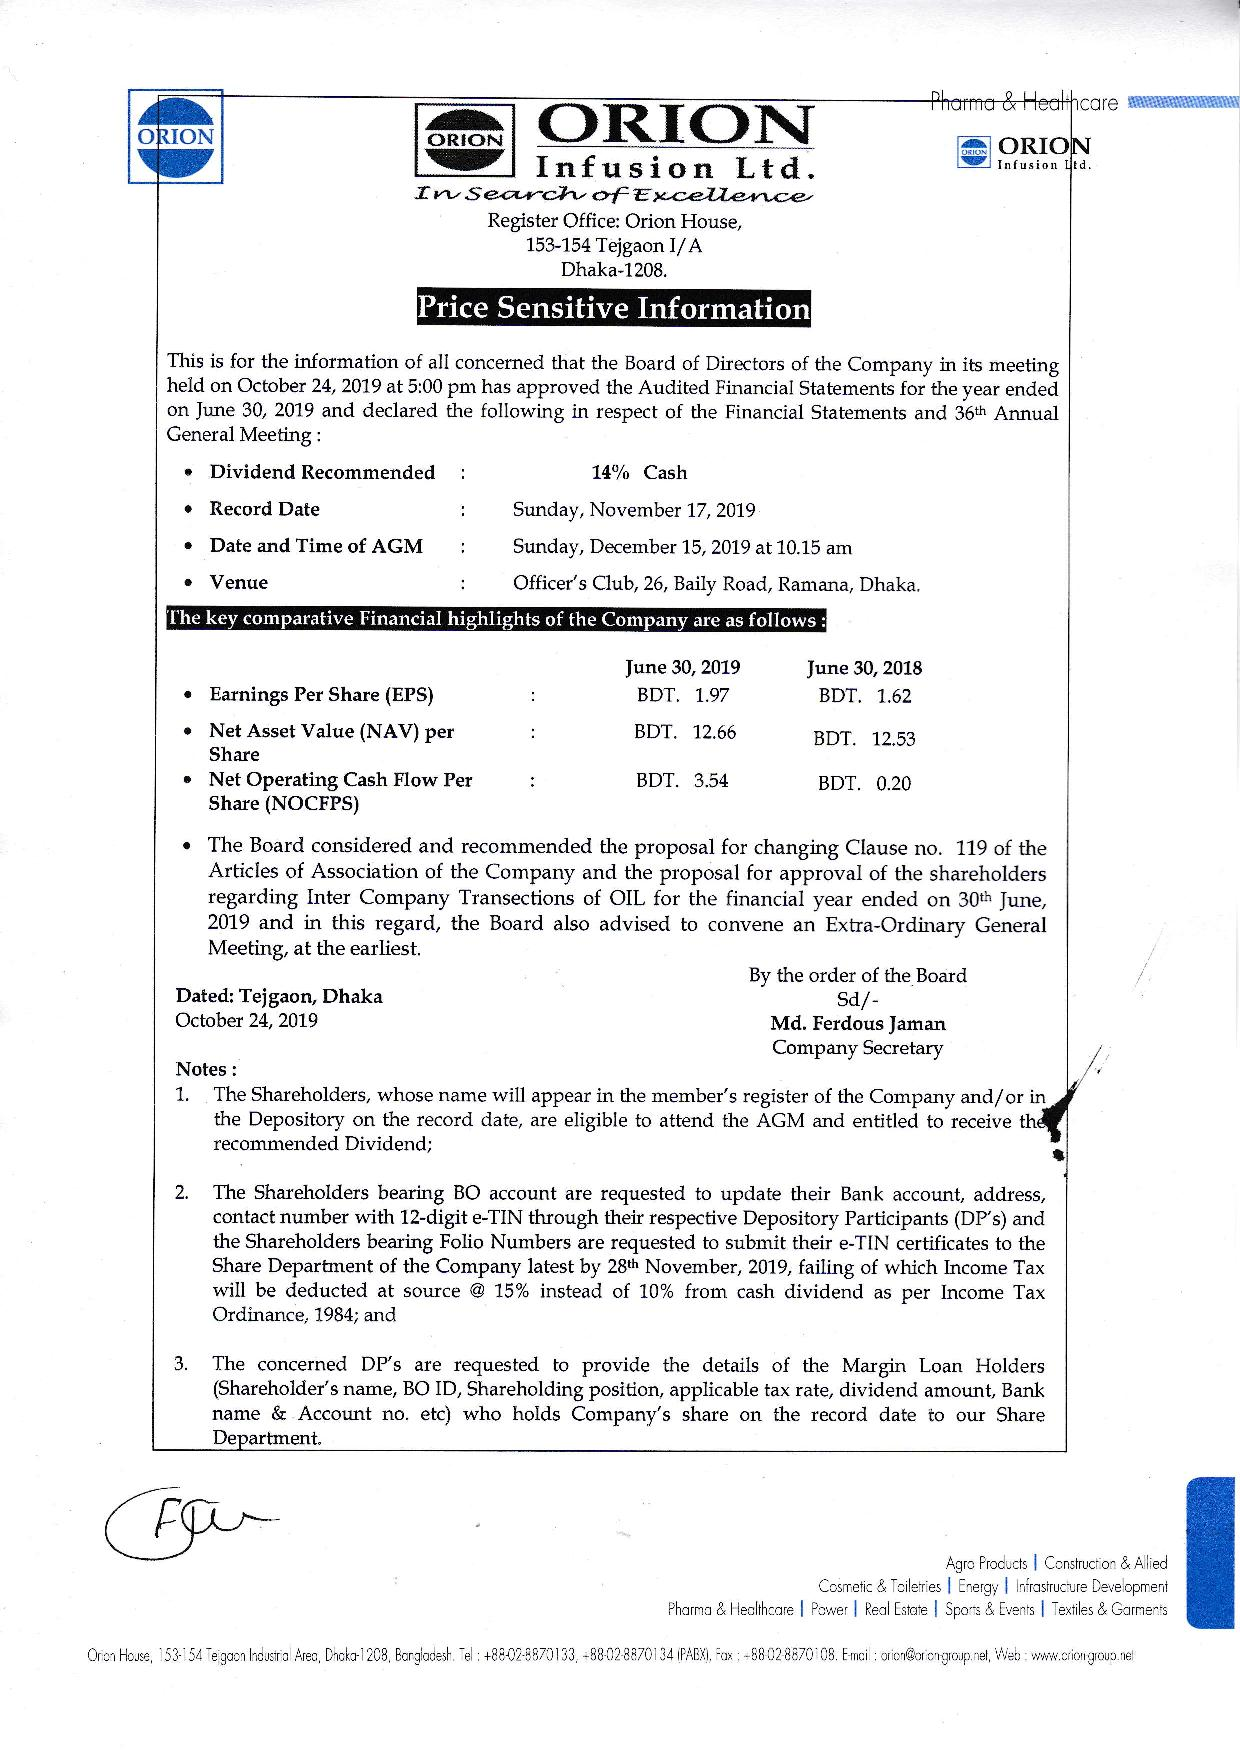 OIL_PSI_Newspaper-page-001